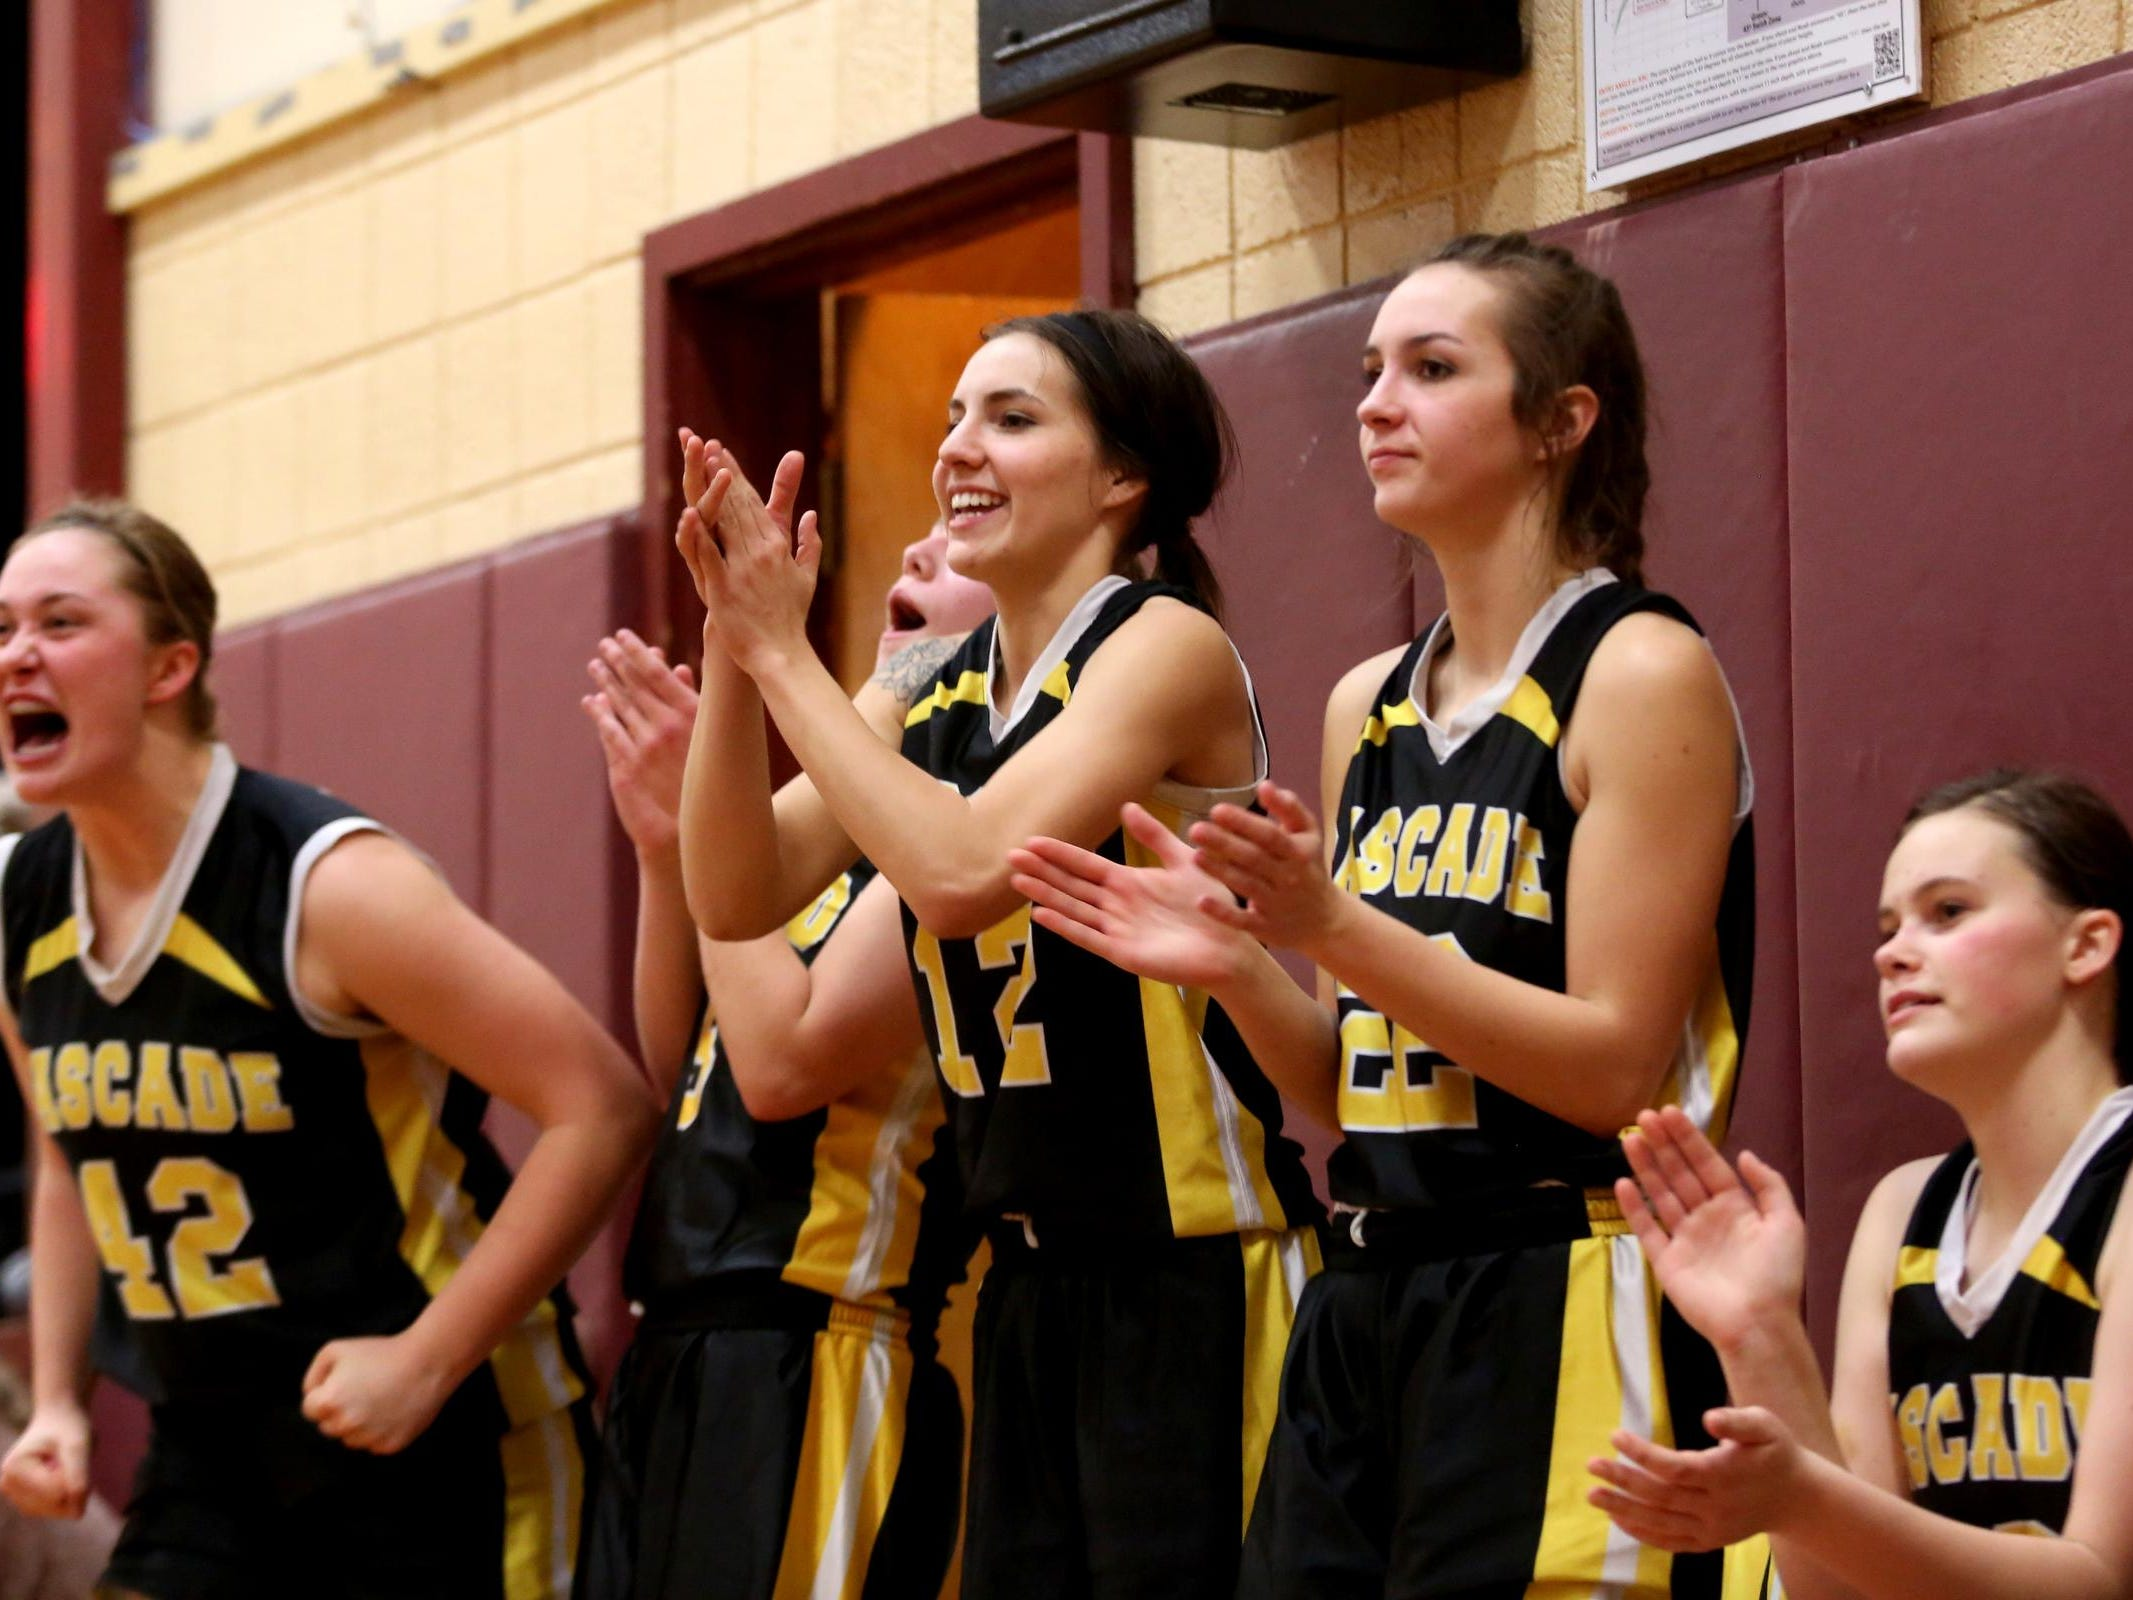 The Cascade bench celebrates a play in the Cascade vs. Junction City girl's basketball game at Junction City High School on Tuesday, Jan. 12, 2015. Cascade won the game 61-43.